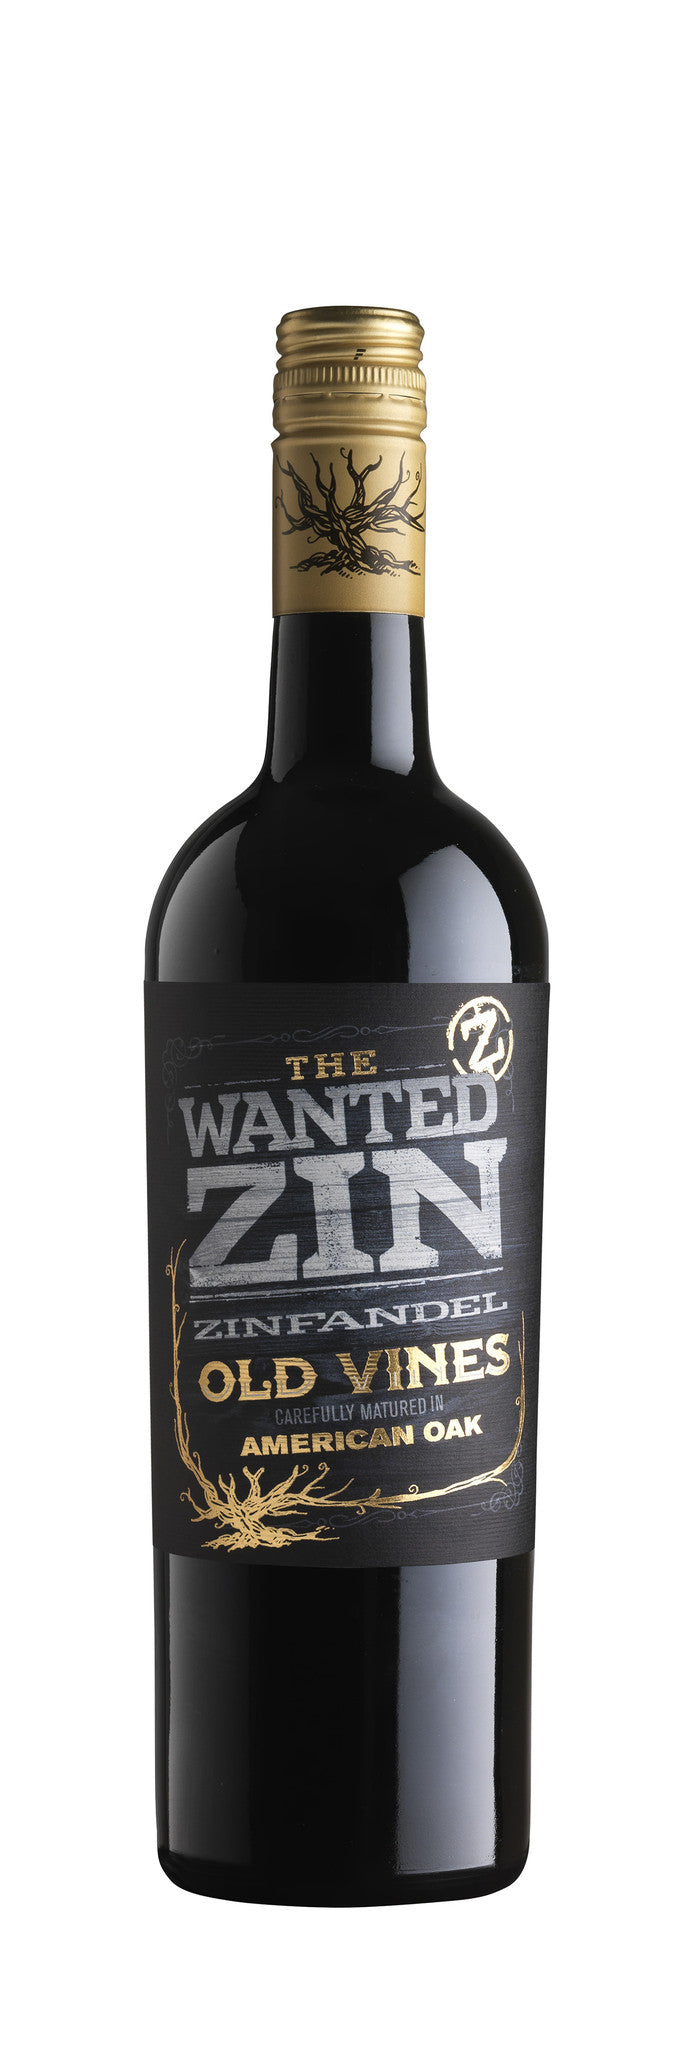 The Wanted Zin Primitivo